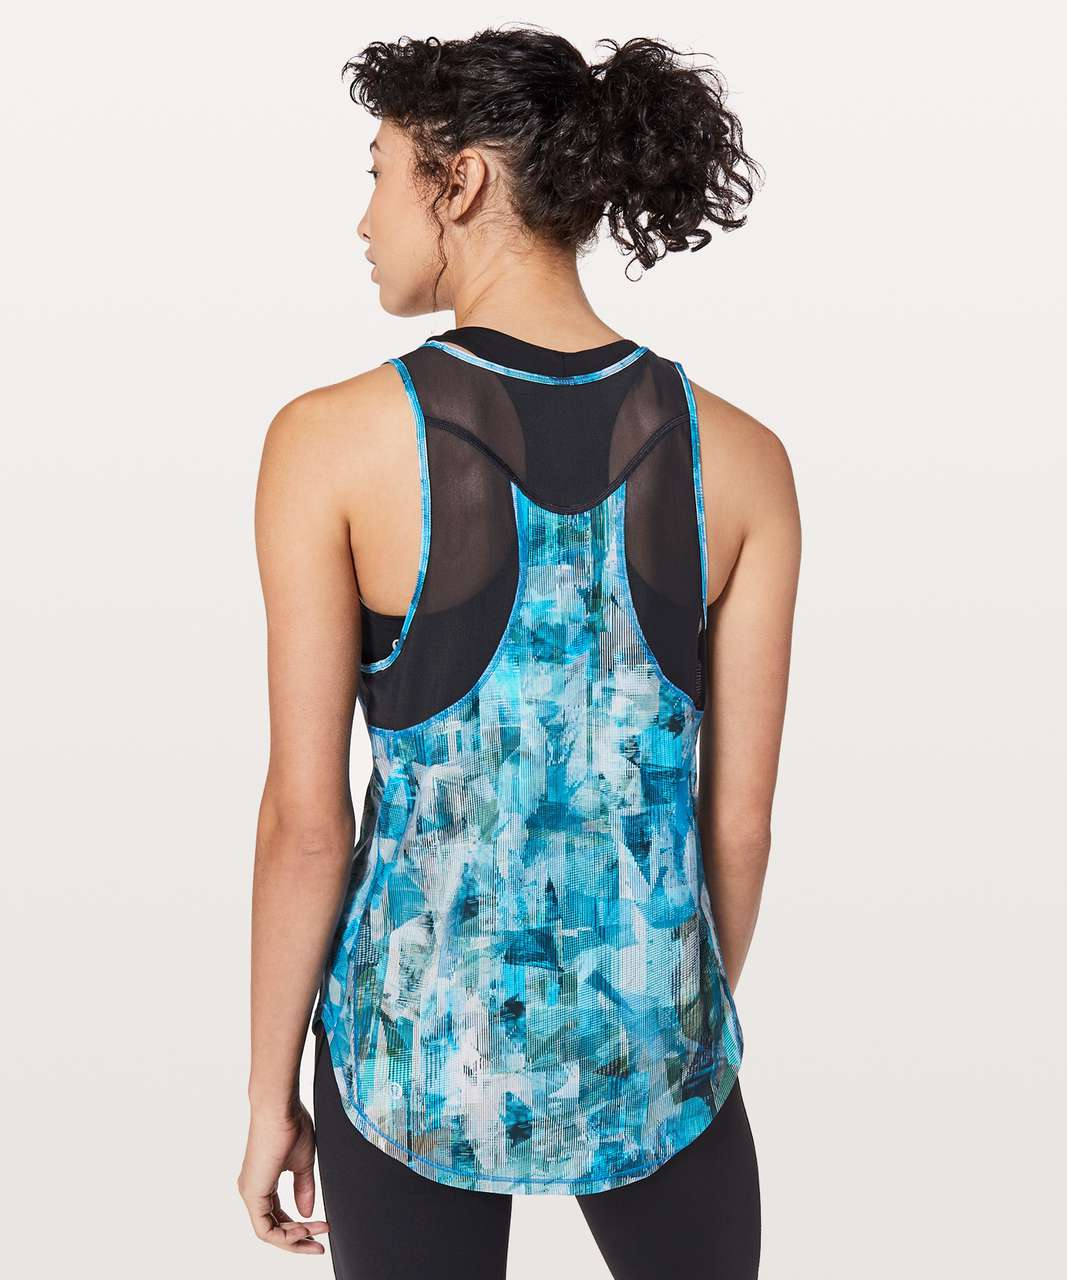 Lululemon Sculpt Tank II - Sun Dazed Multi Blue / Super Dark